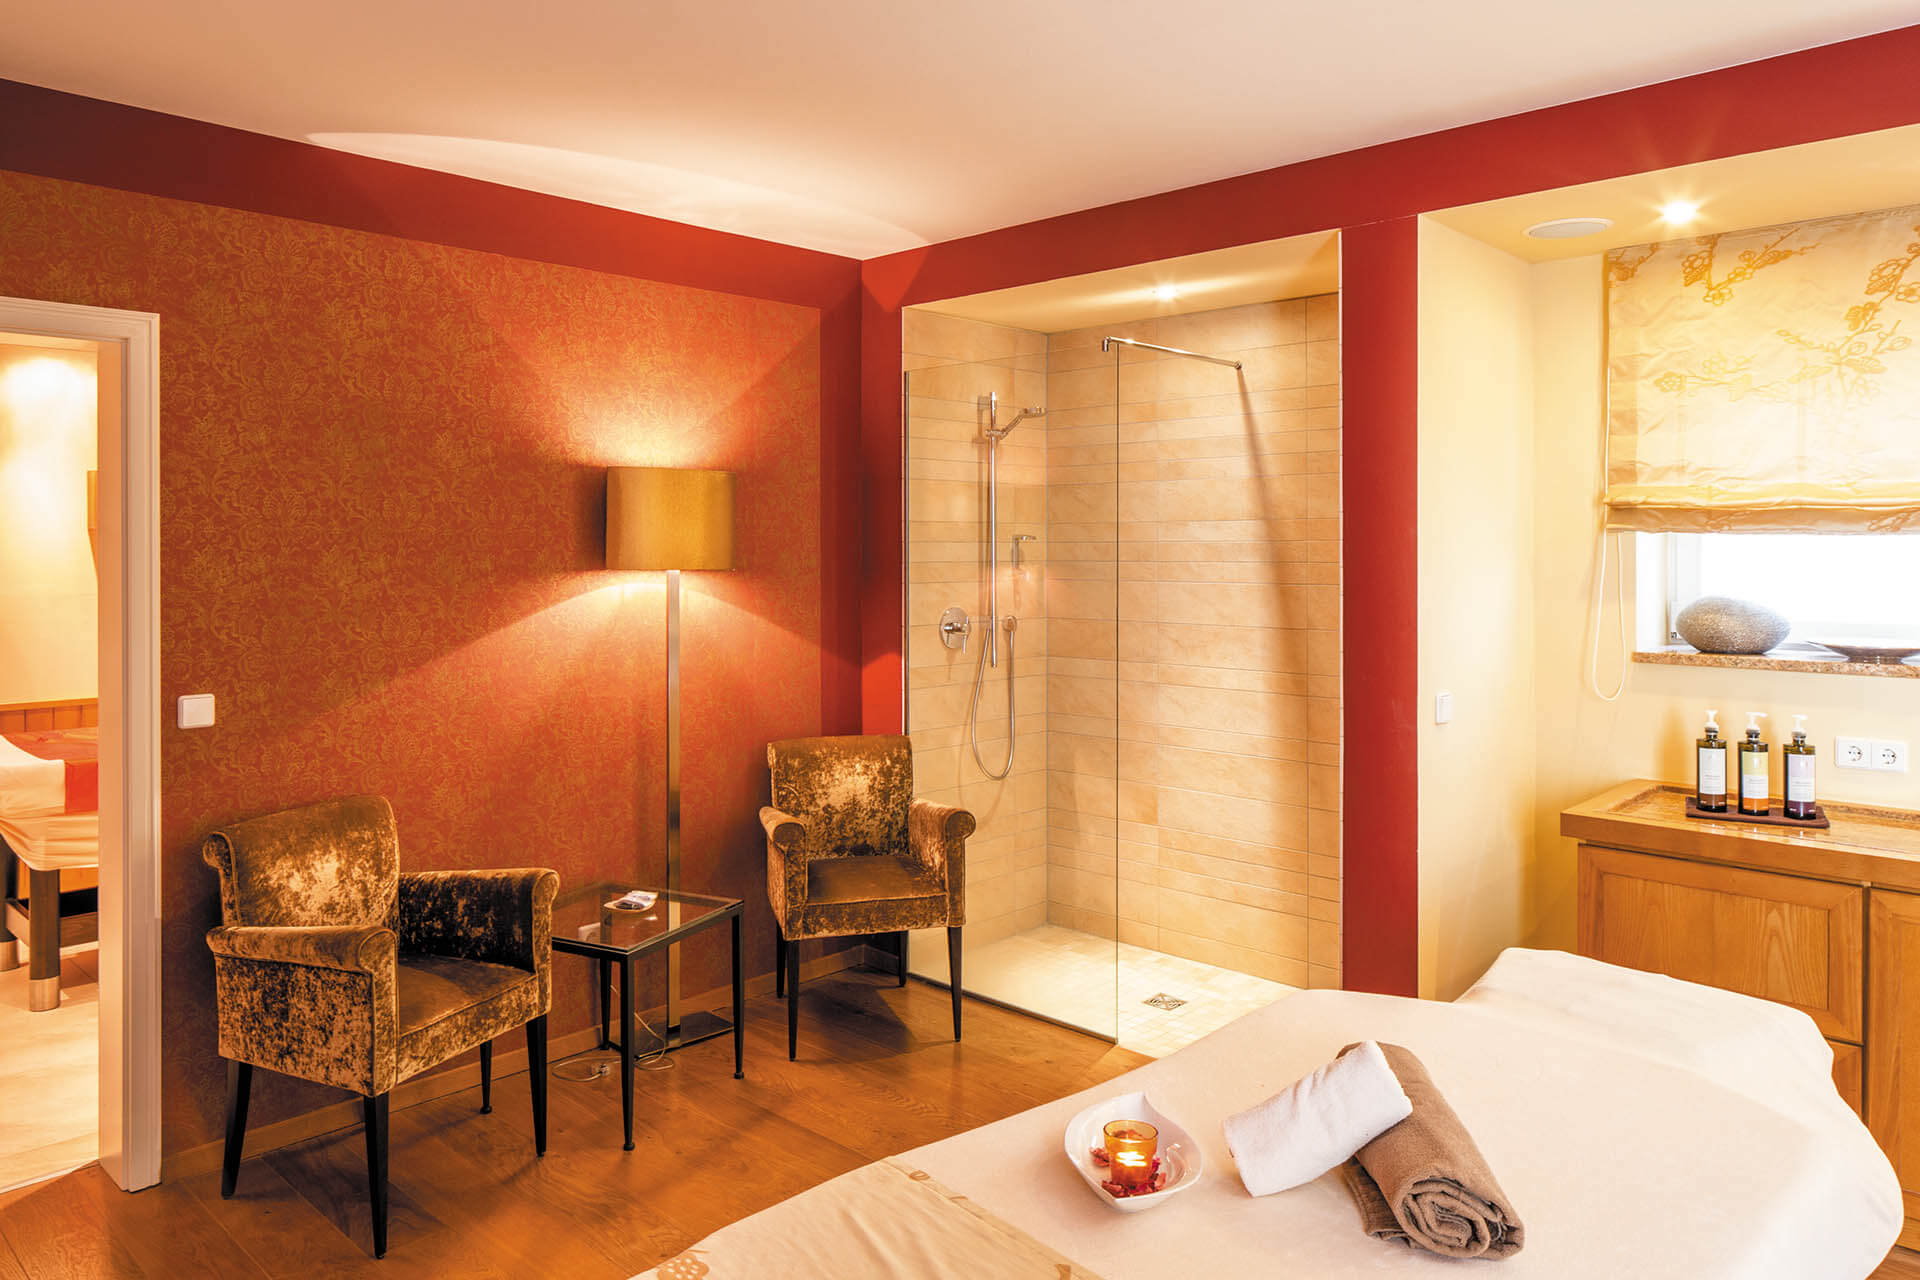 Stellvertretender SPA Manager - Ritter von Kempski Privathotels